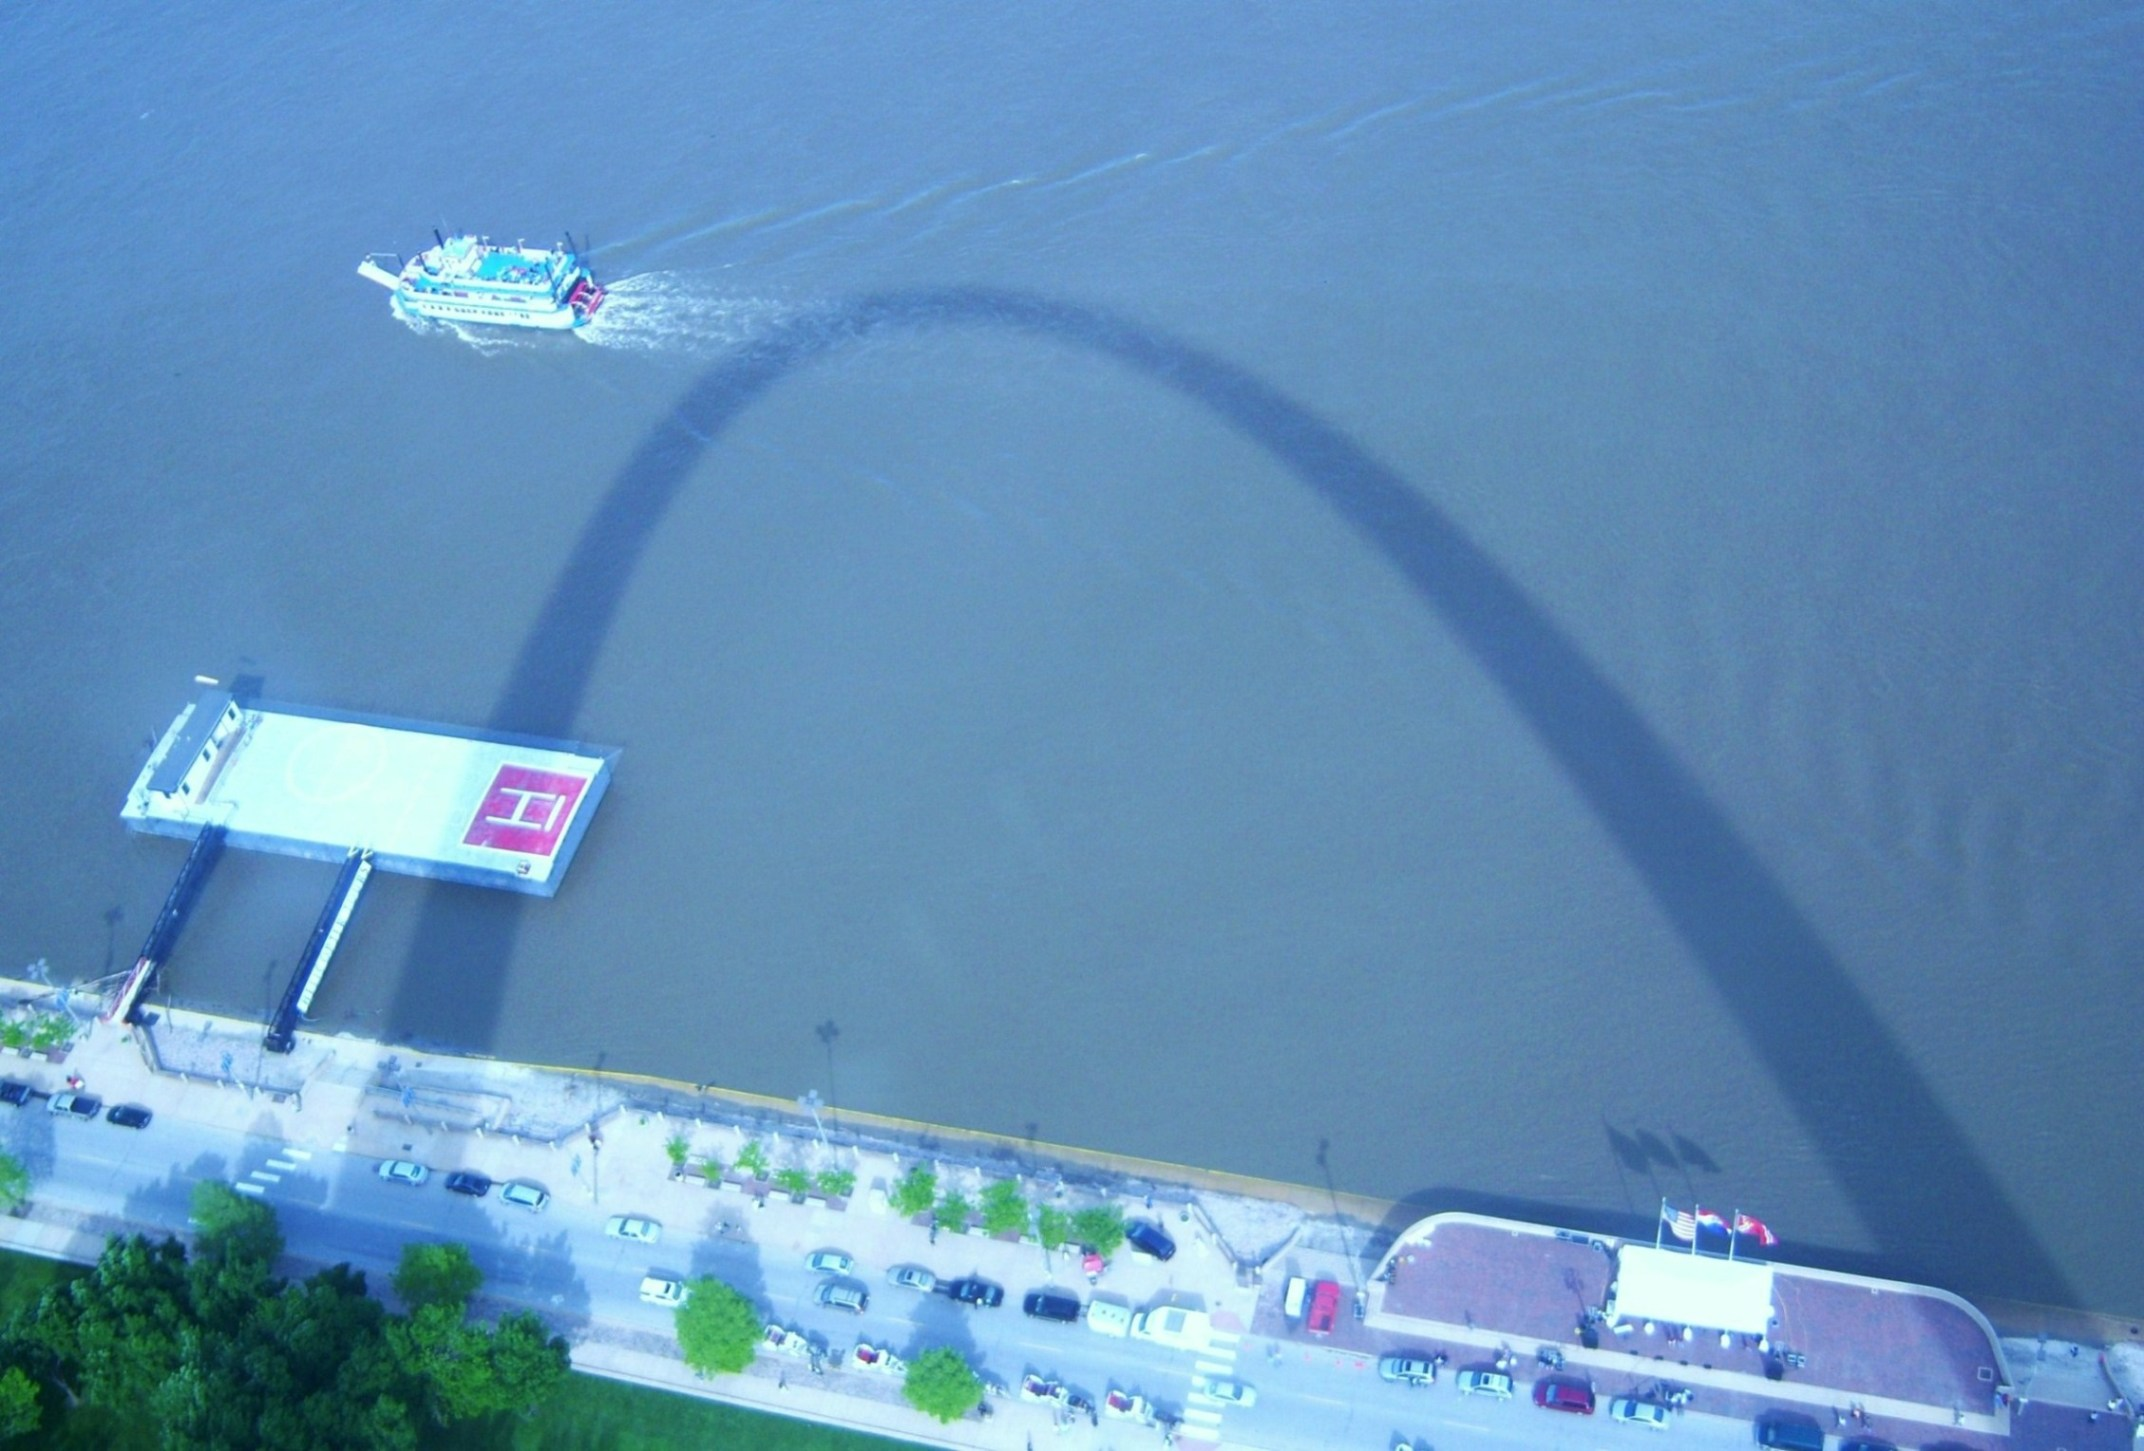 Sean Russell - Atop the Gateway Arch